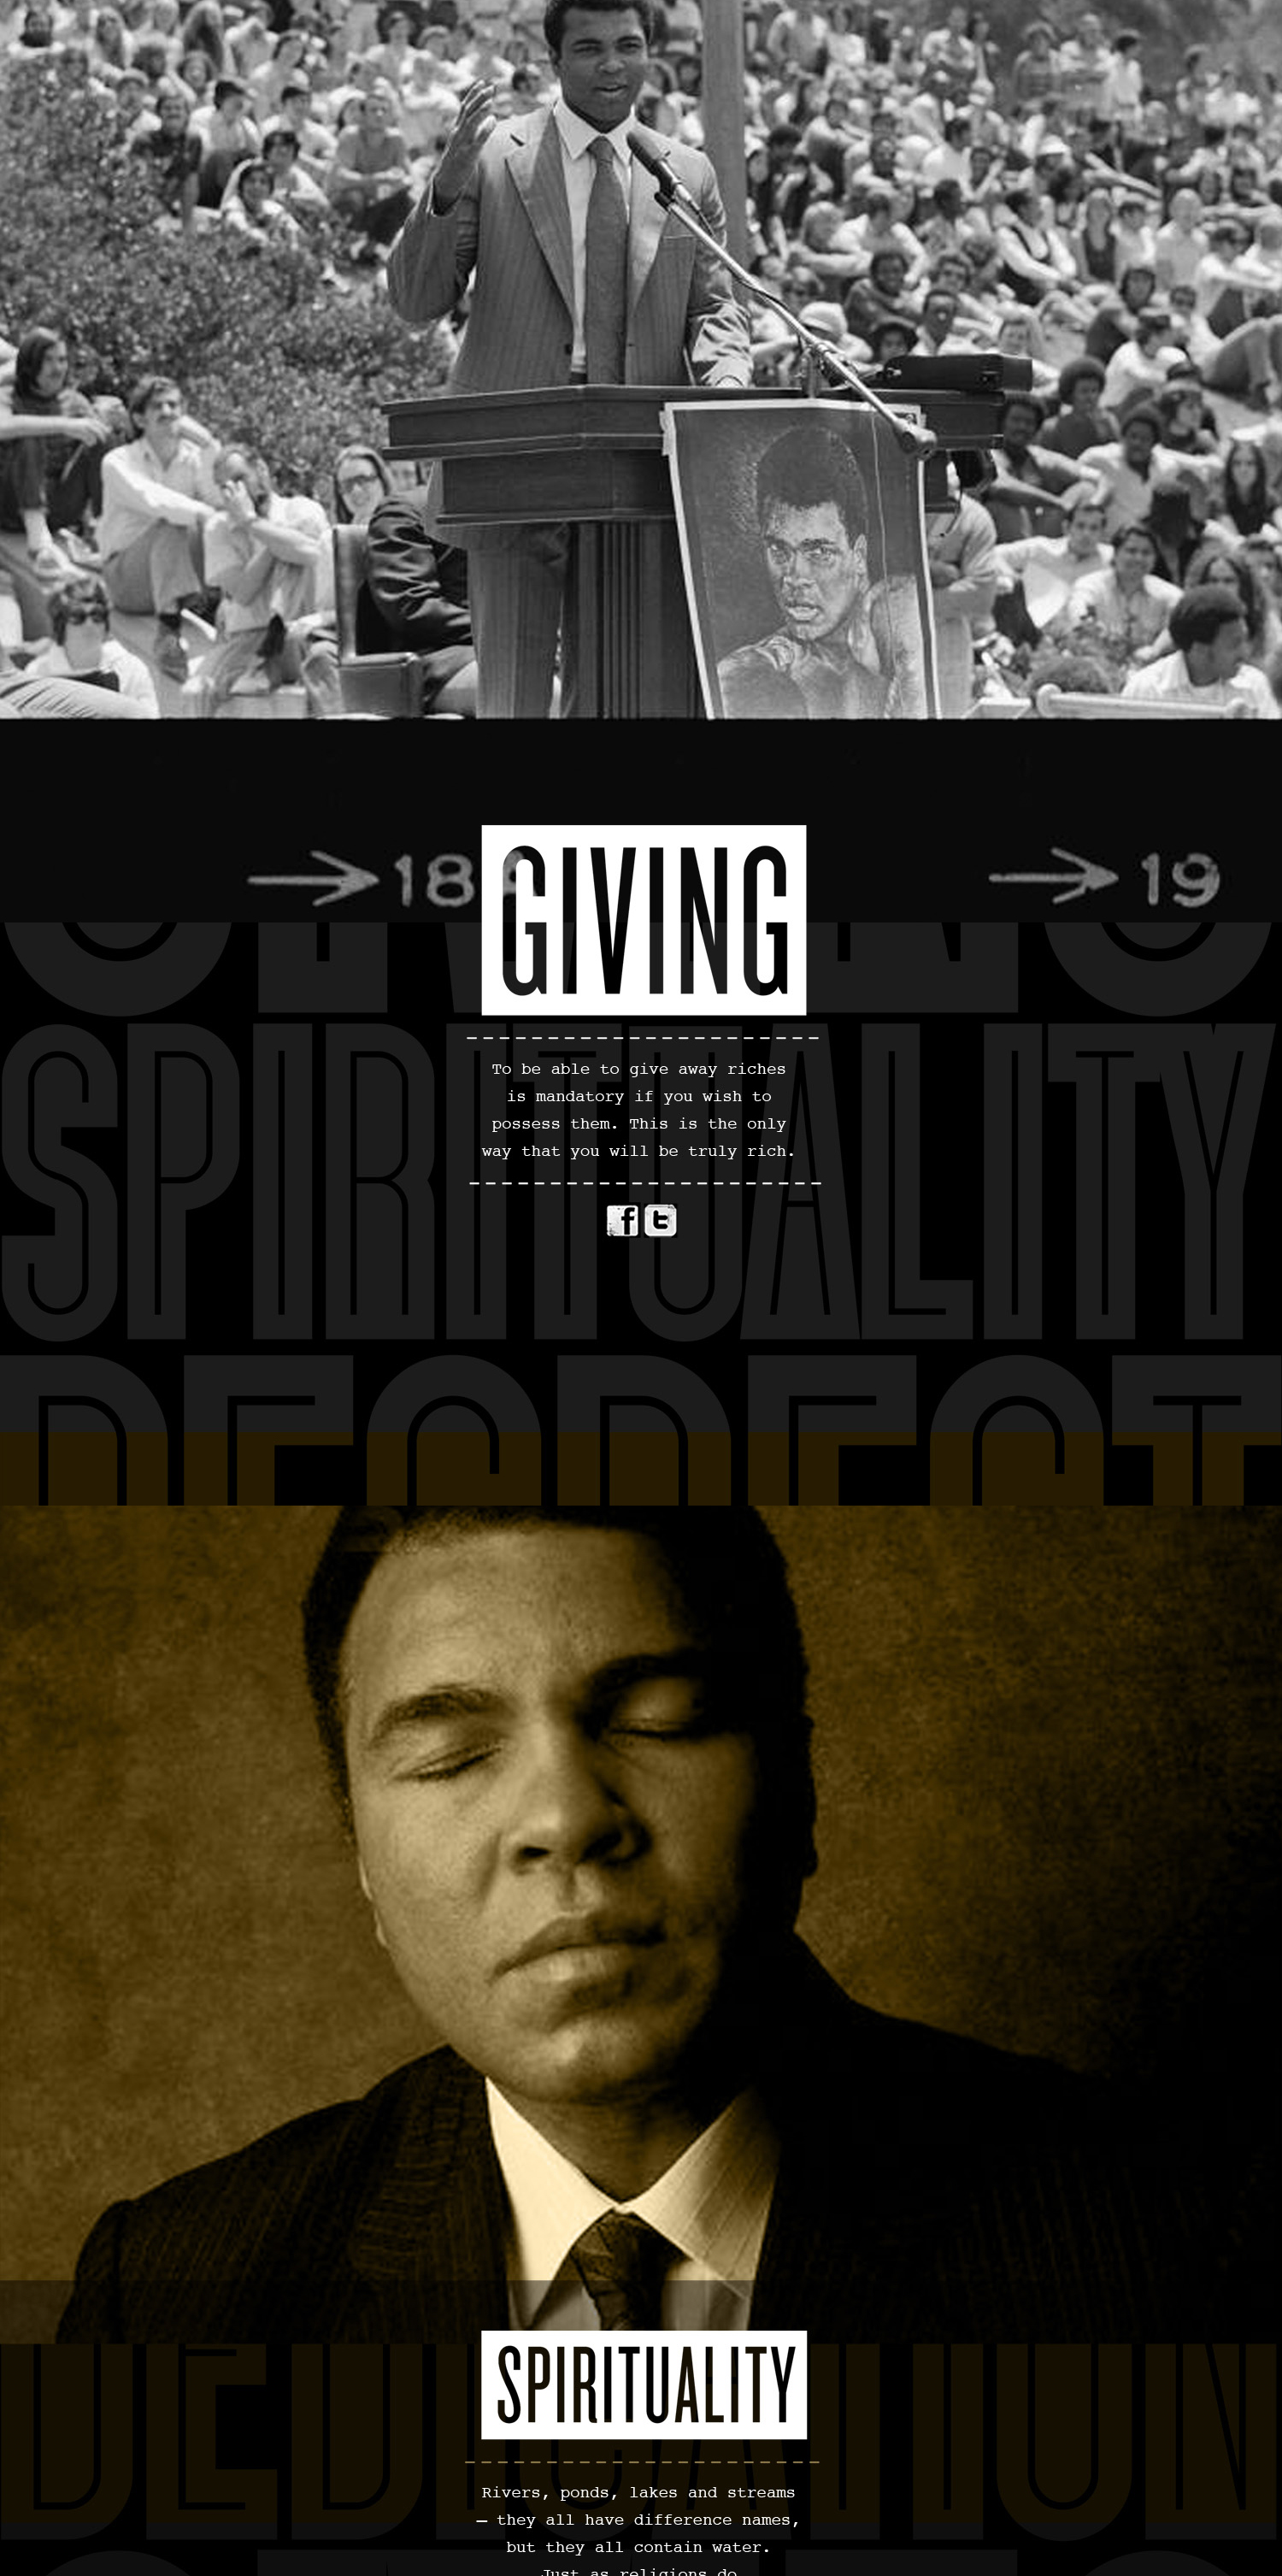 Muhammed Ali images and quote related to giving